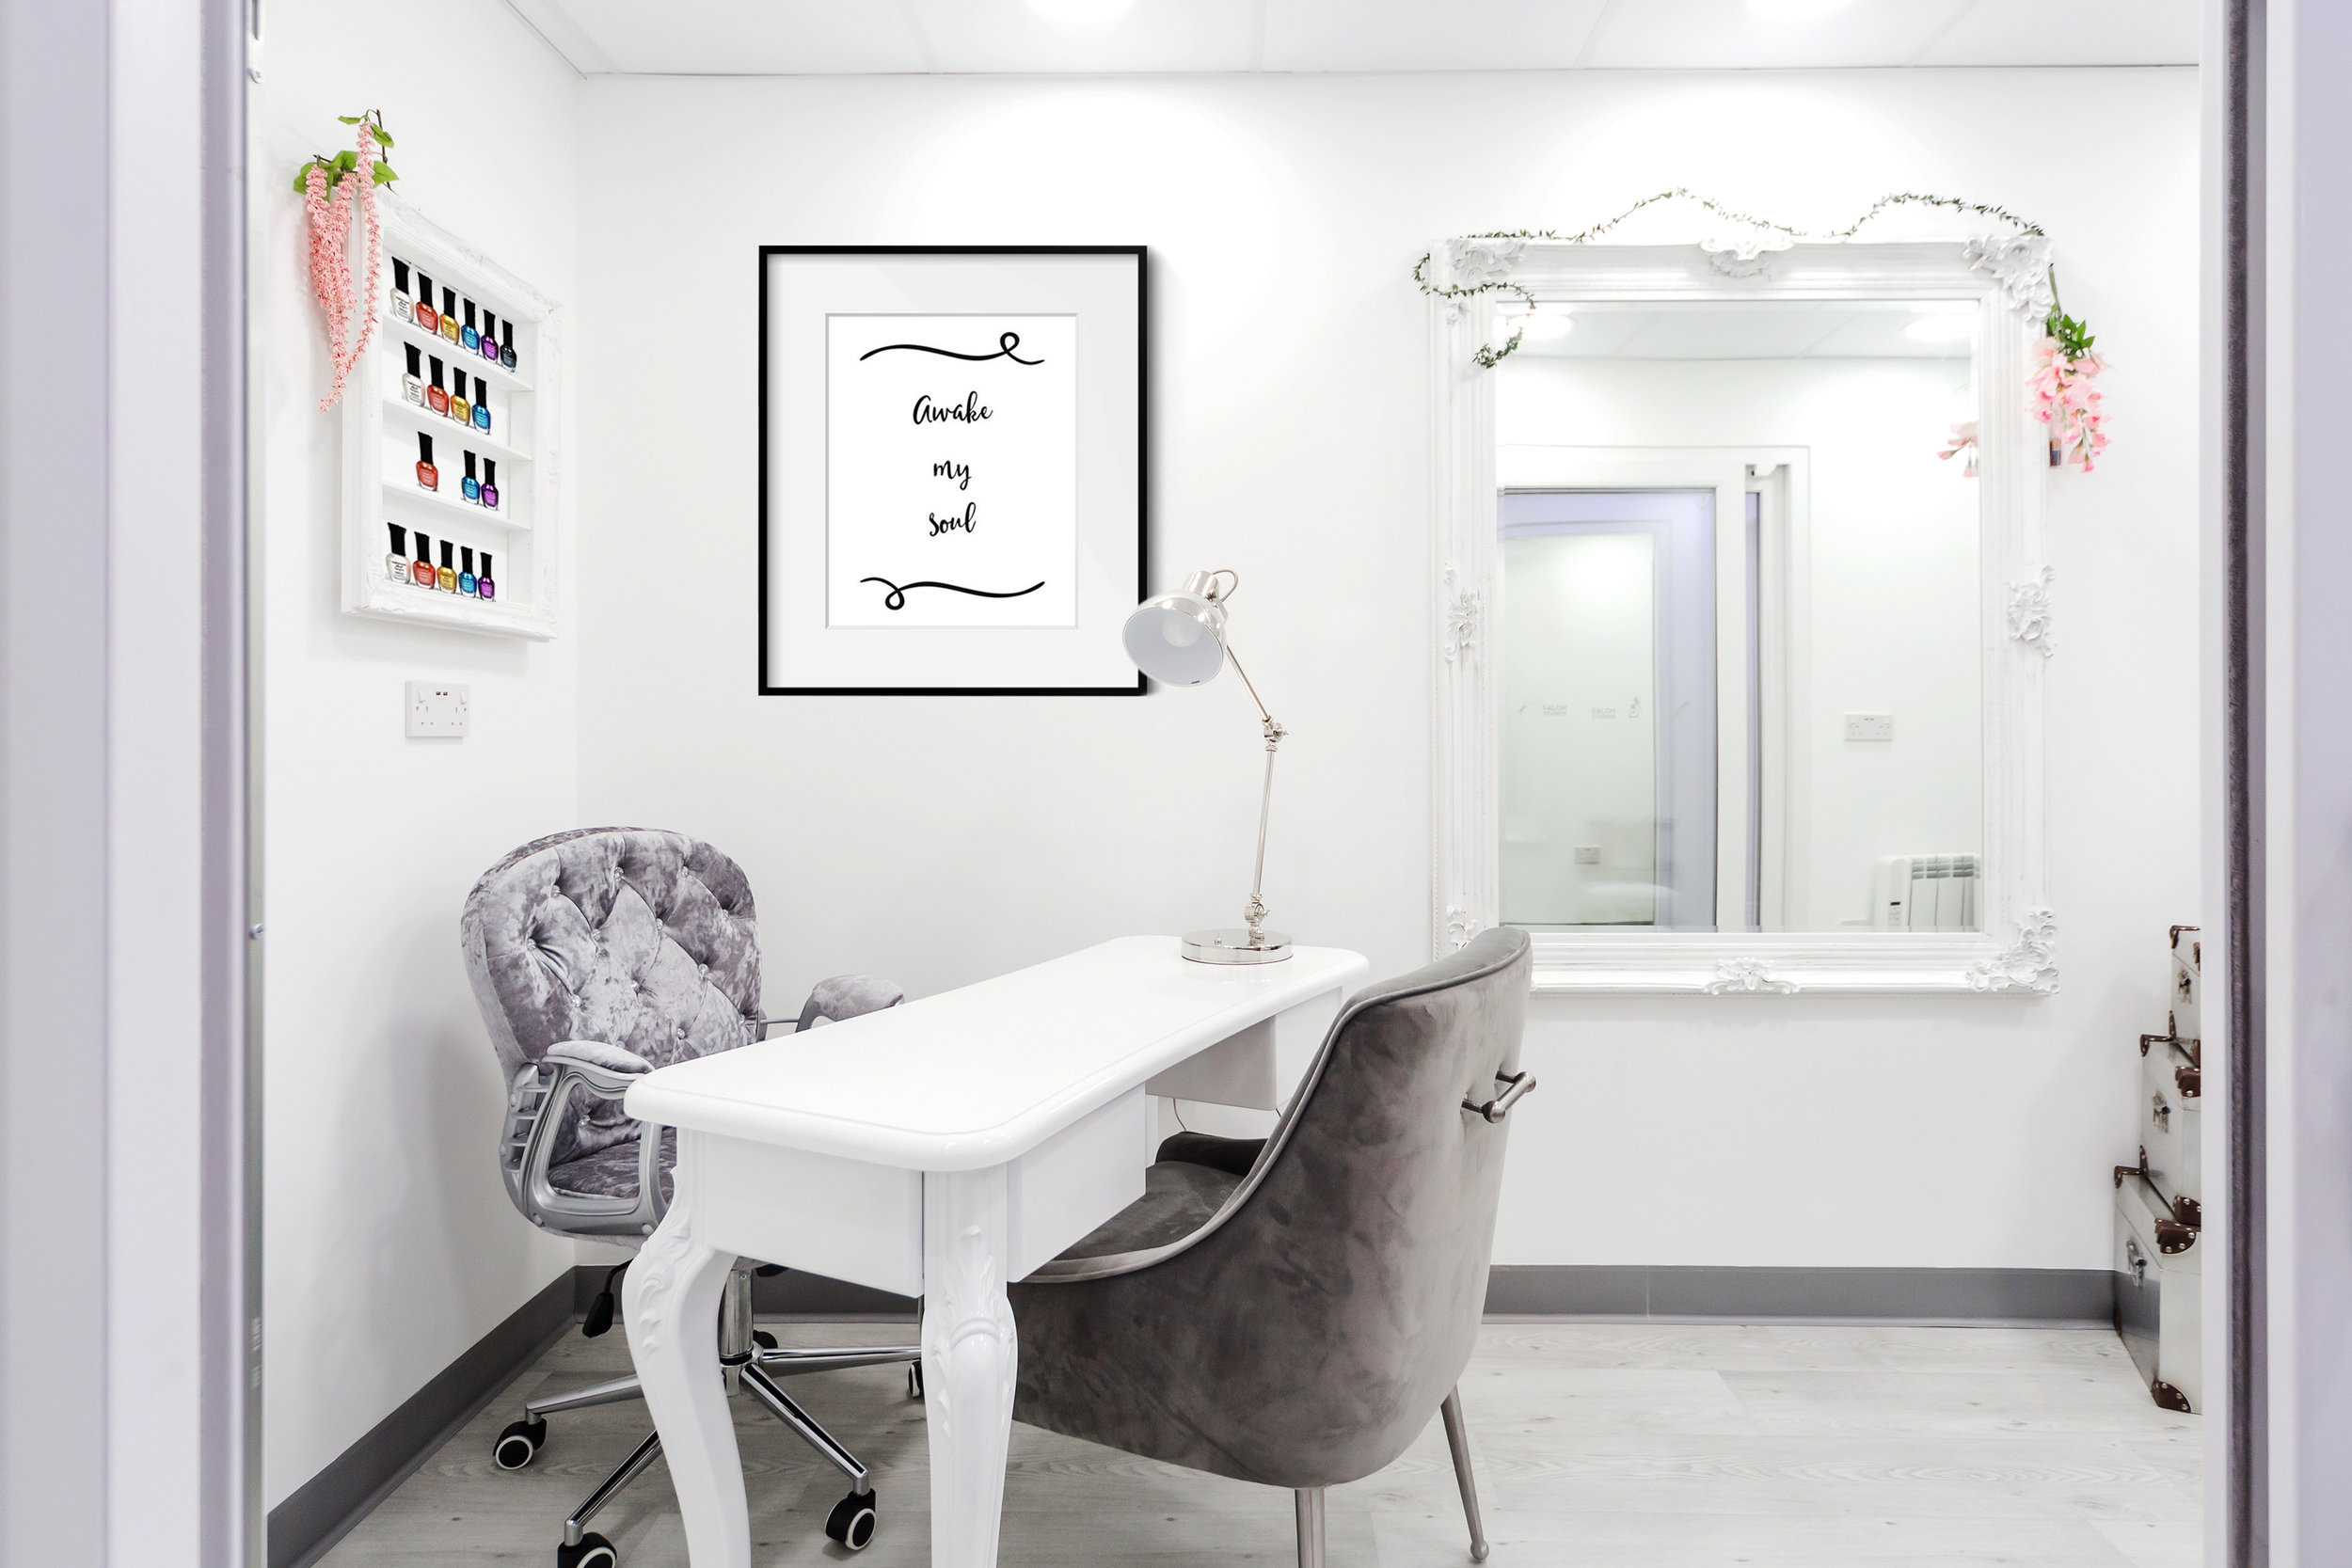 Our beautiful nail salon could soon be your home! Images of beauty salons available on request.